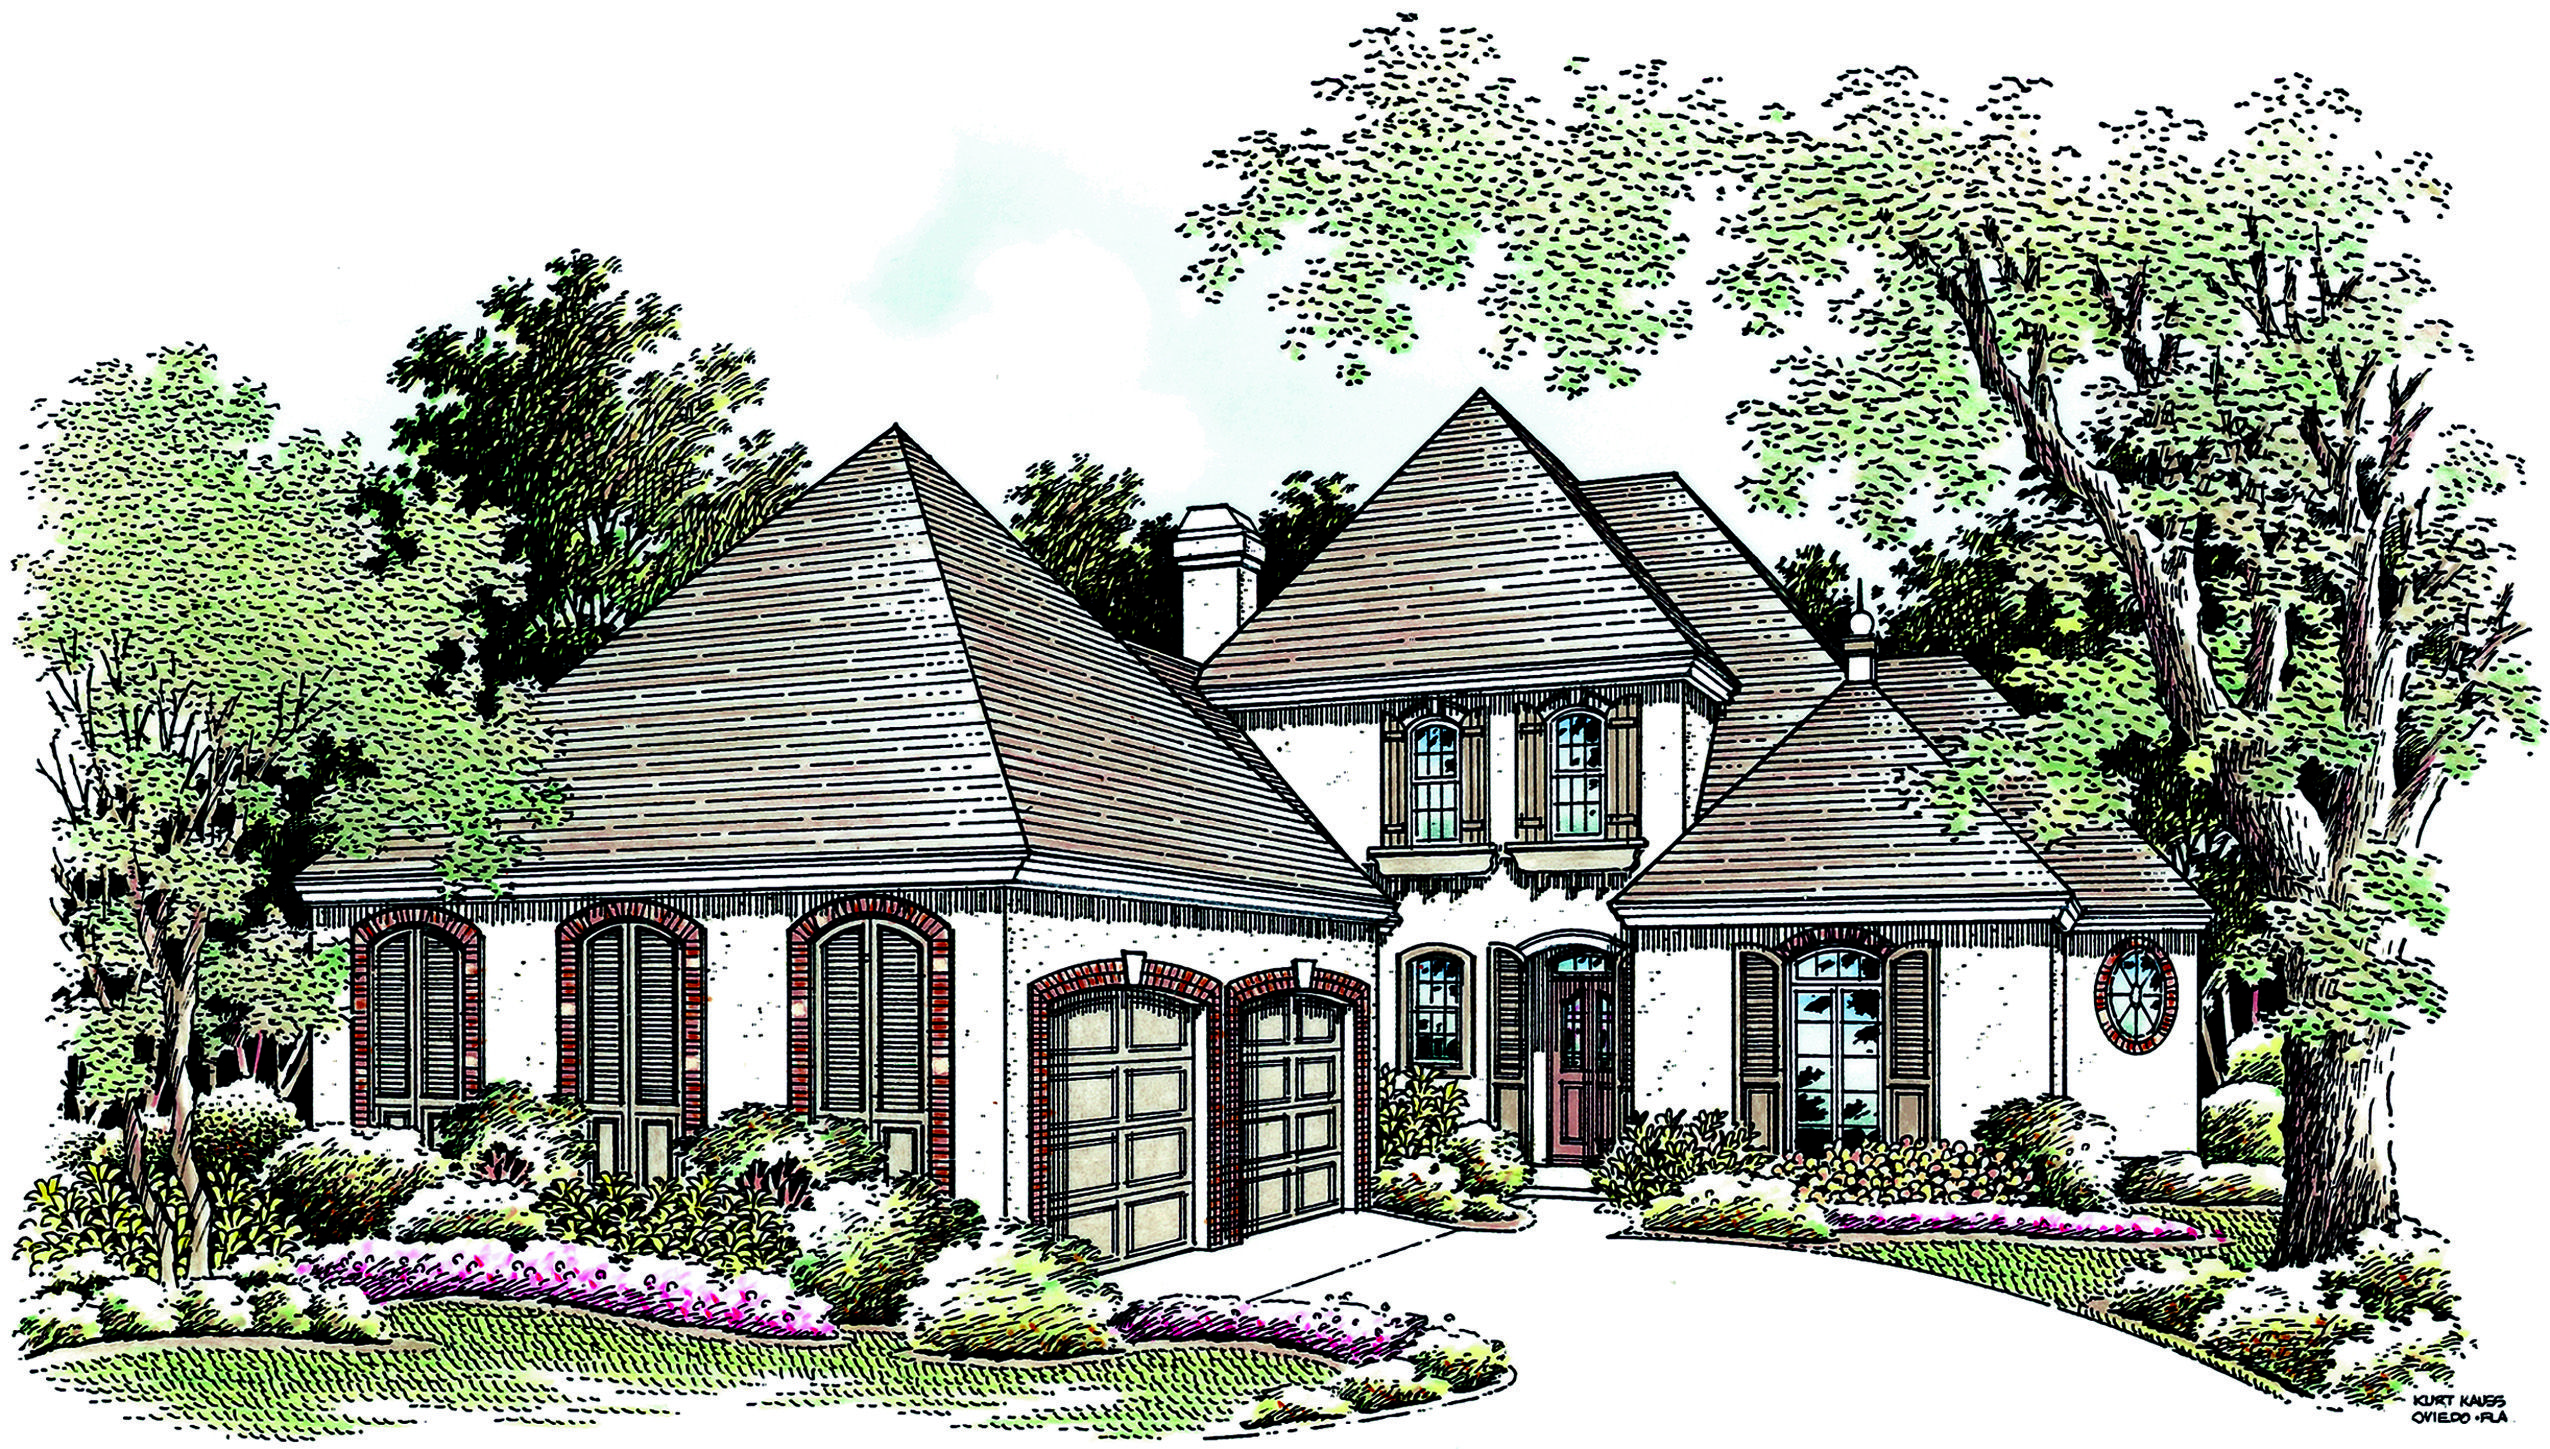 Plan 5556br Old World Charm Cottage House Plans House Plans Old World